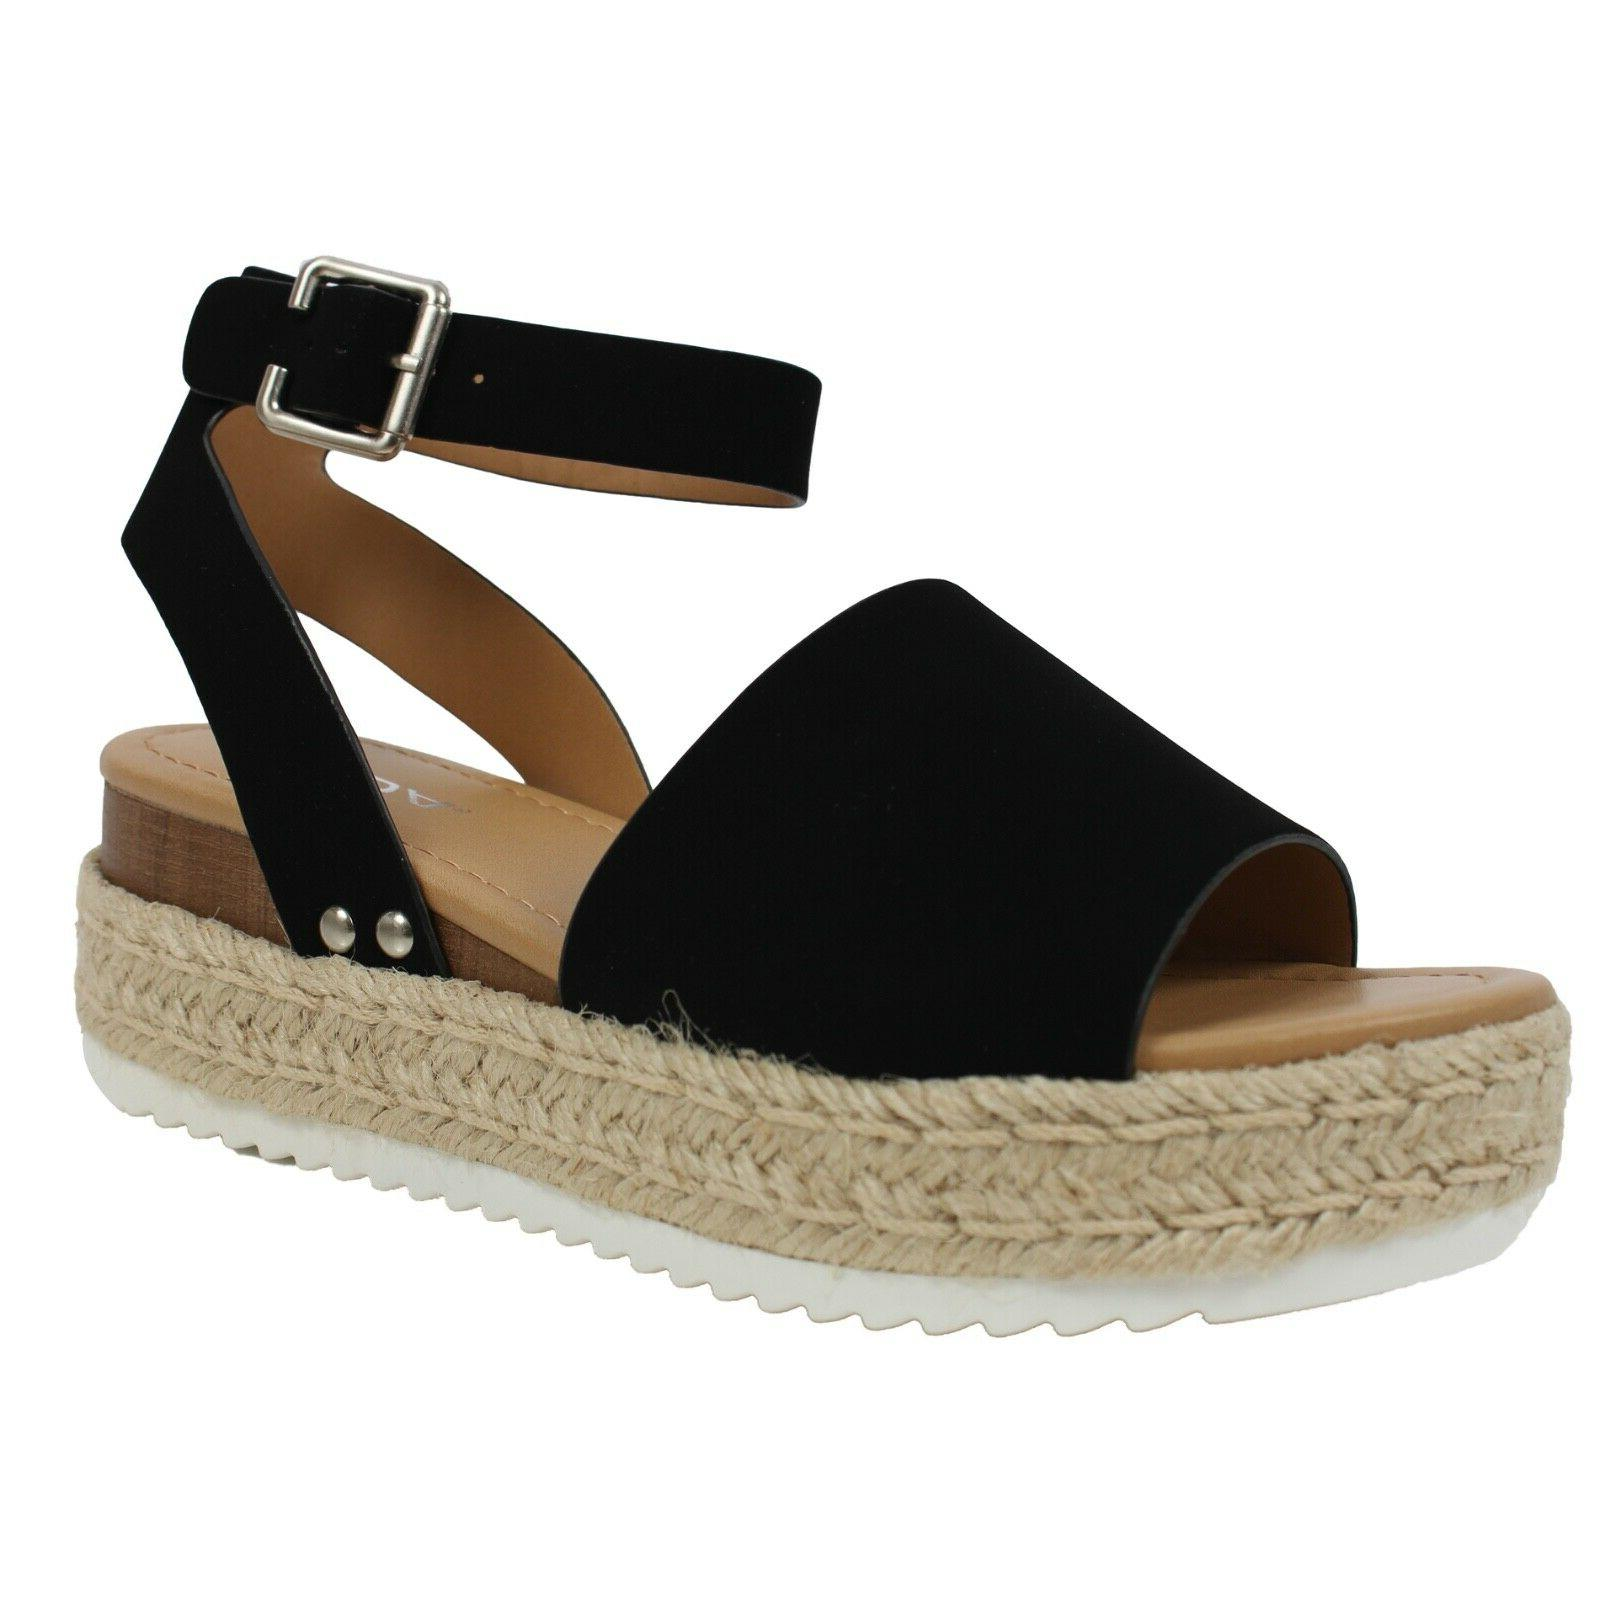 Soda TOPIC-S Platform Sandals